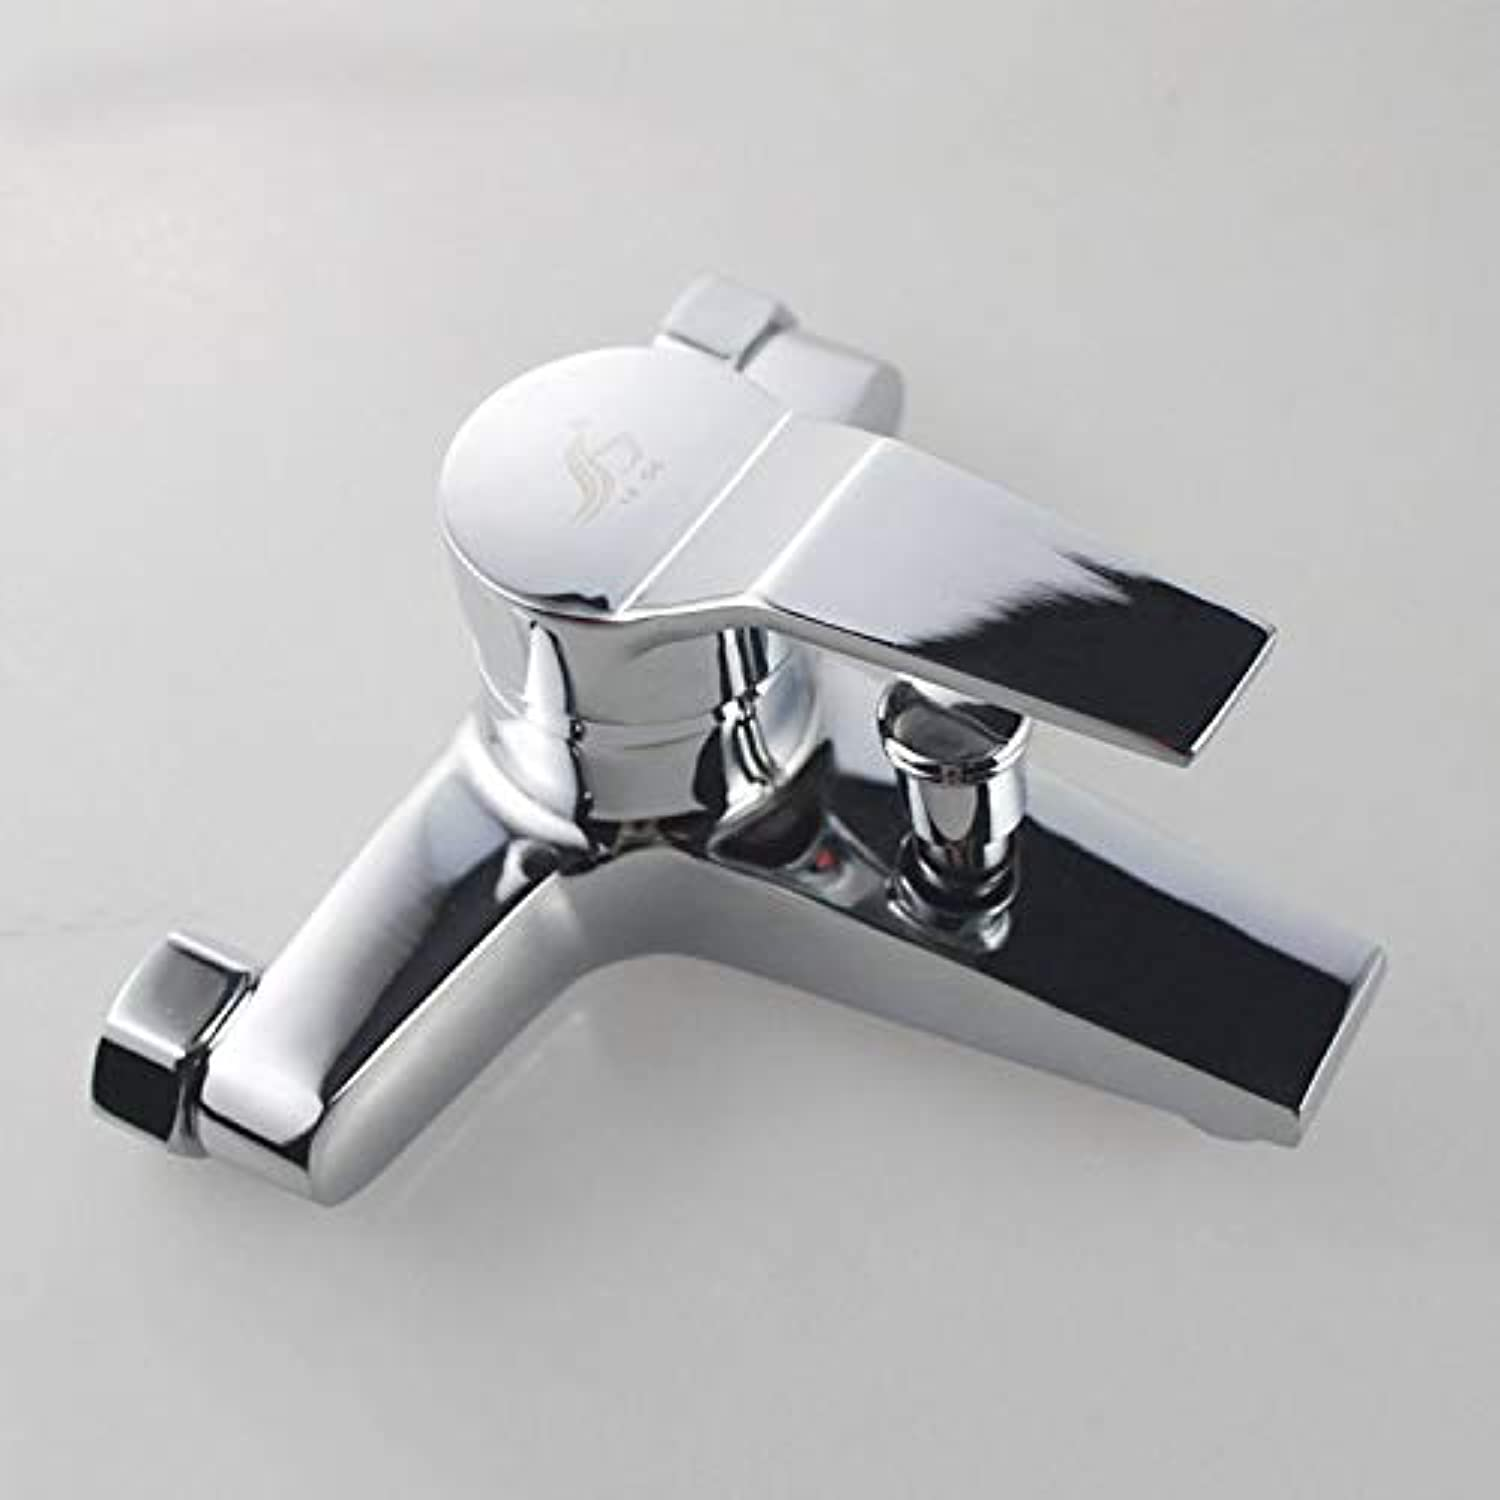 redOOY Taps Zinc Alloy Shower Faucet???Concealed Mixing Valve Bathtub Hot And Cold Shower Faucet